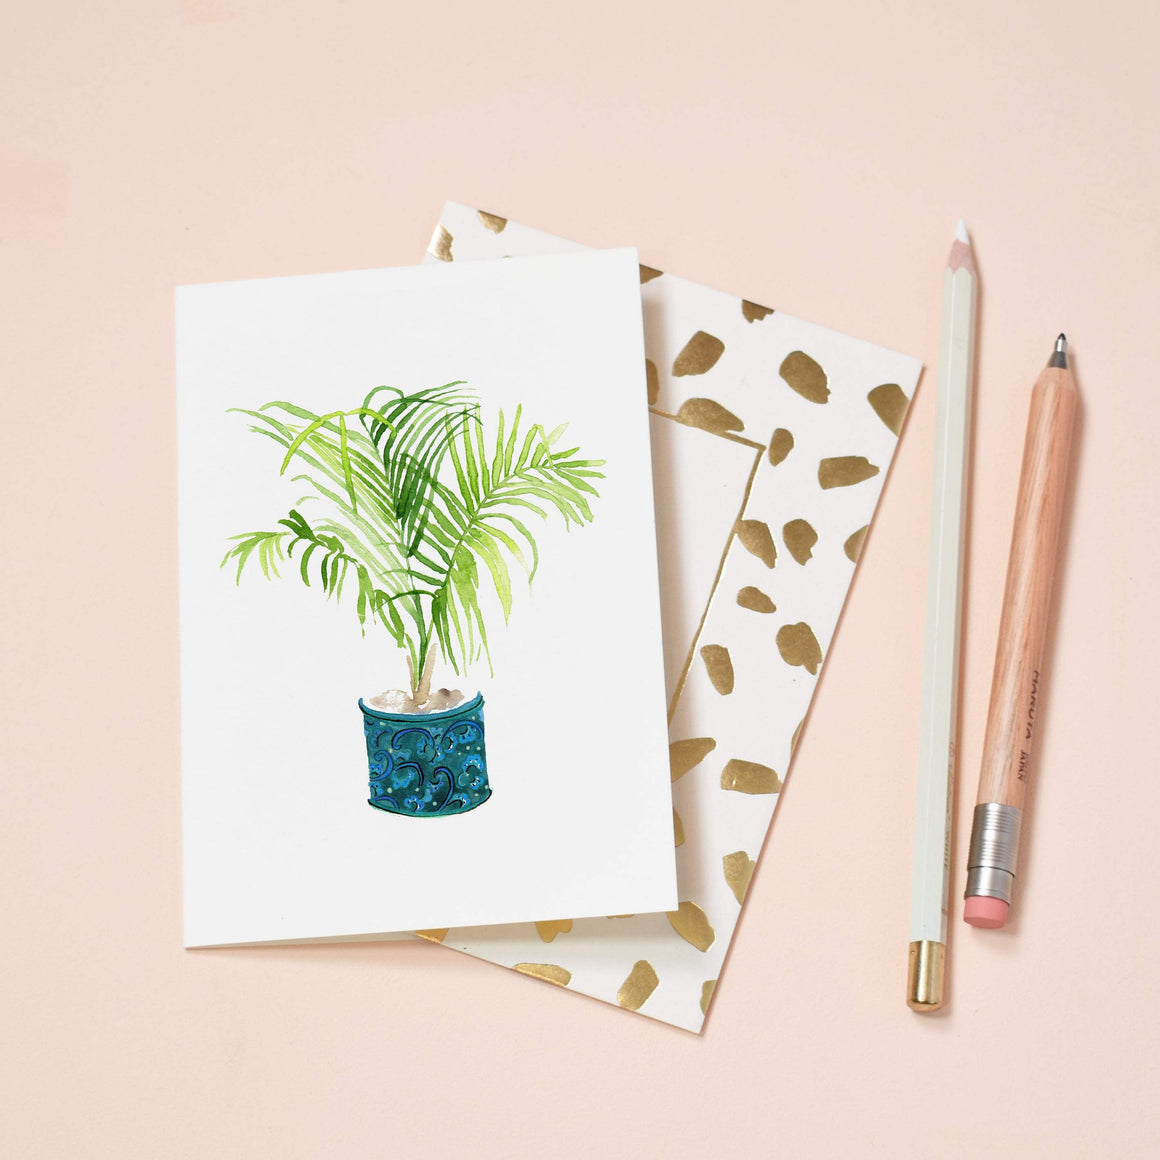 LIZ TEMPERLEY Palm in Blue Plant Pot Notecard